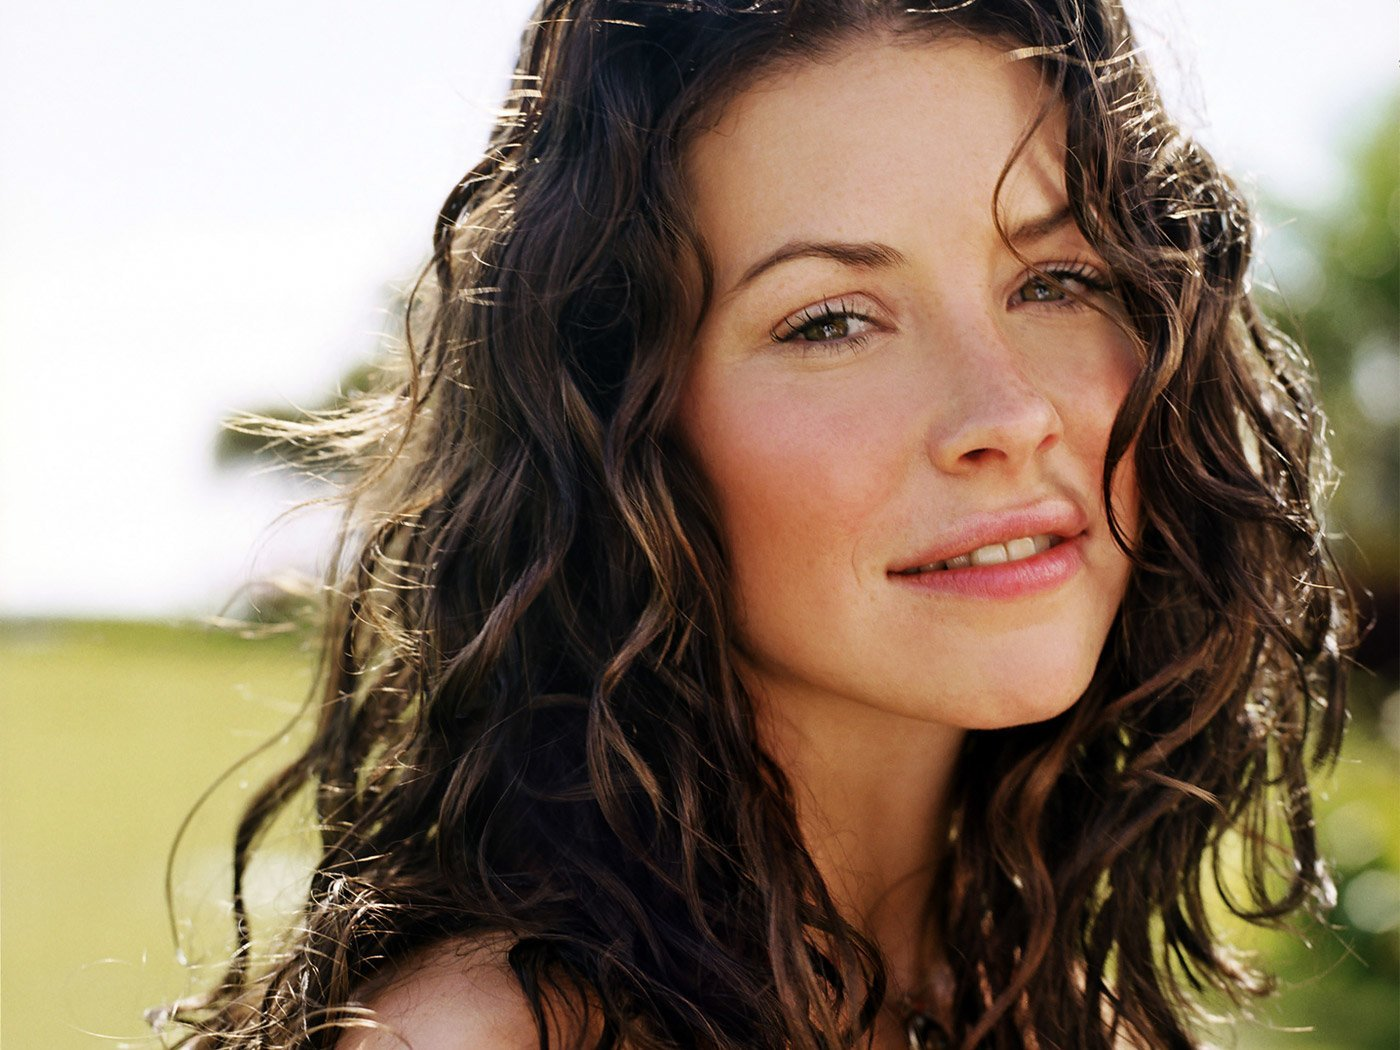 Video: Evangeline Lilly Takes A 'Real Steel' Break To Talk About 'The Hobbit'